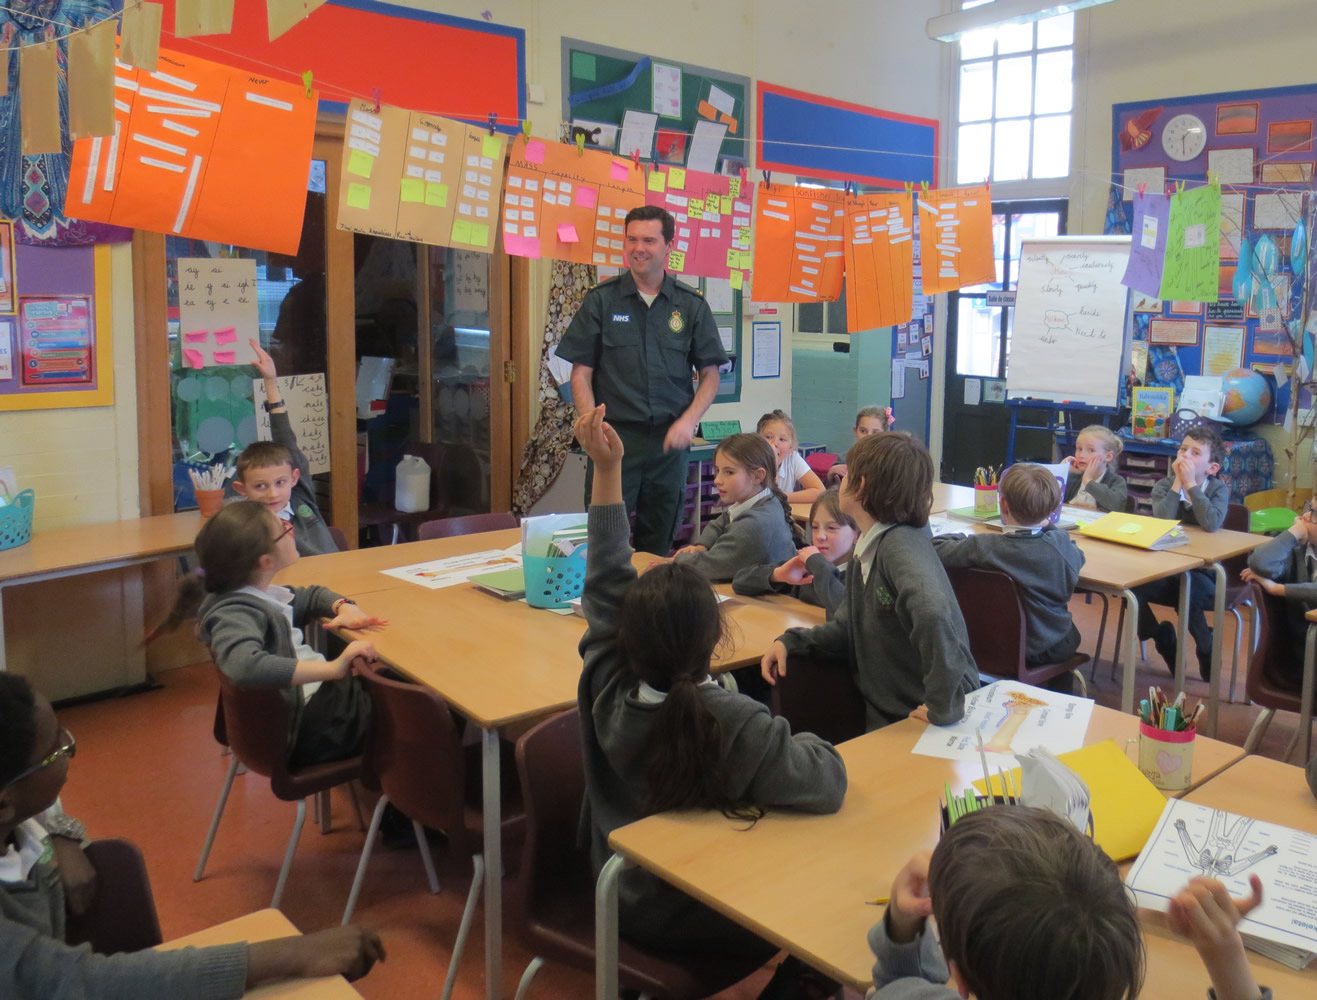 We were excited to have a visit from a paramedic.